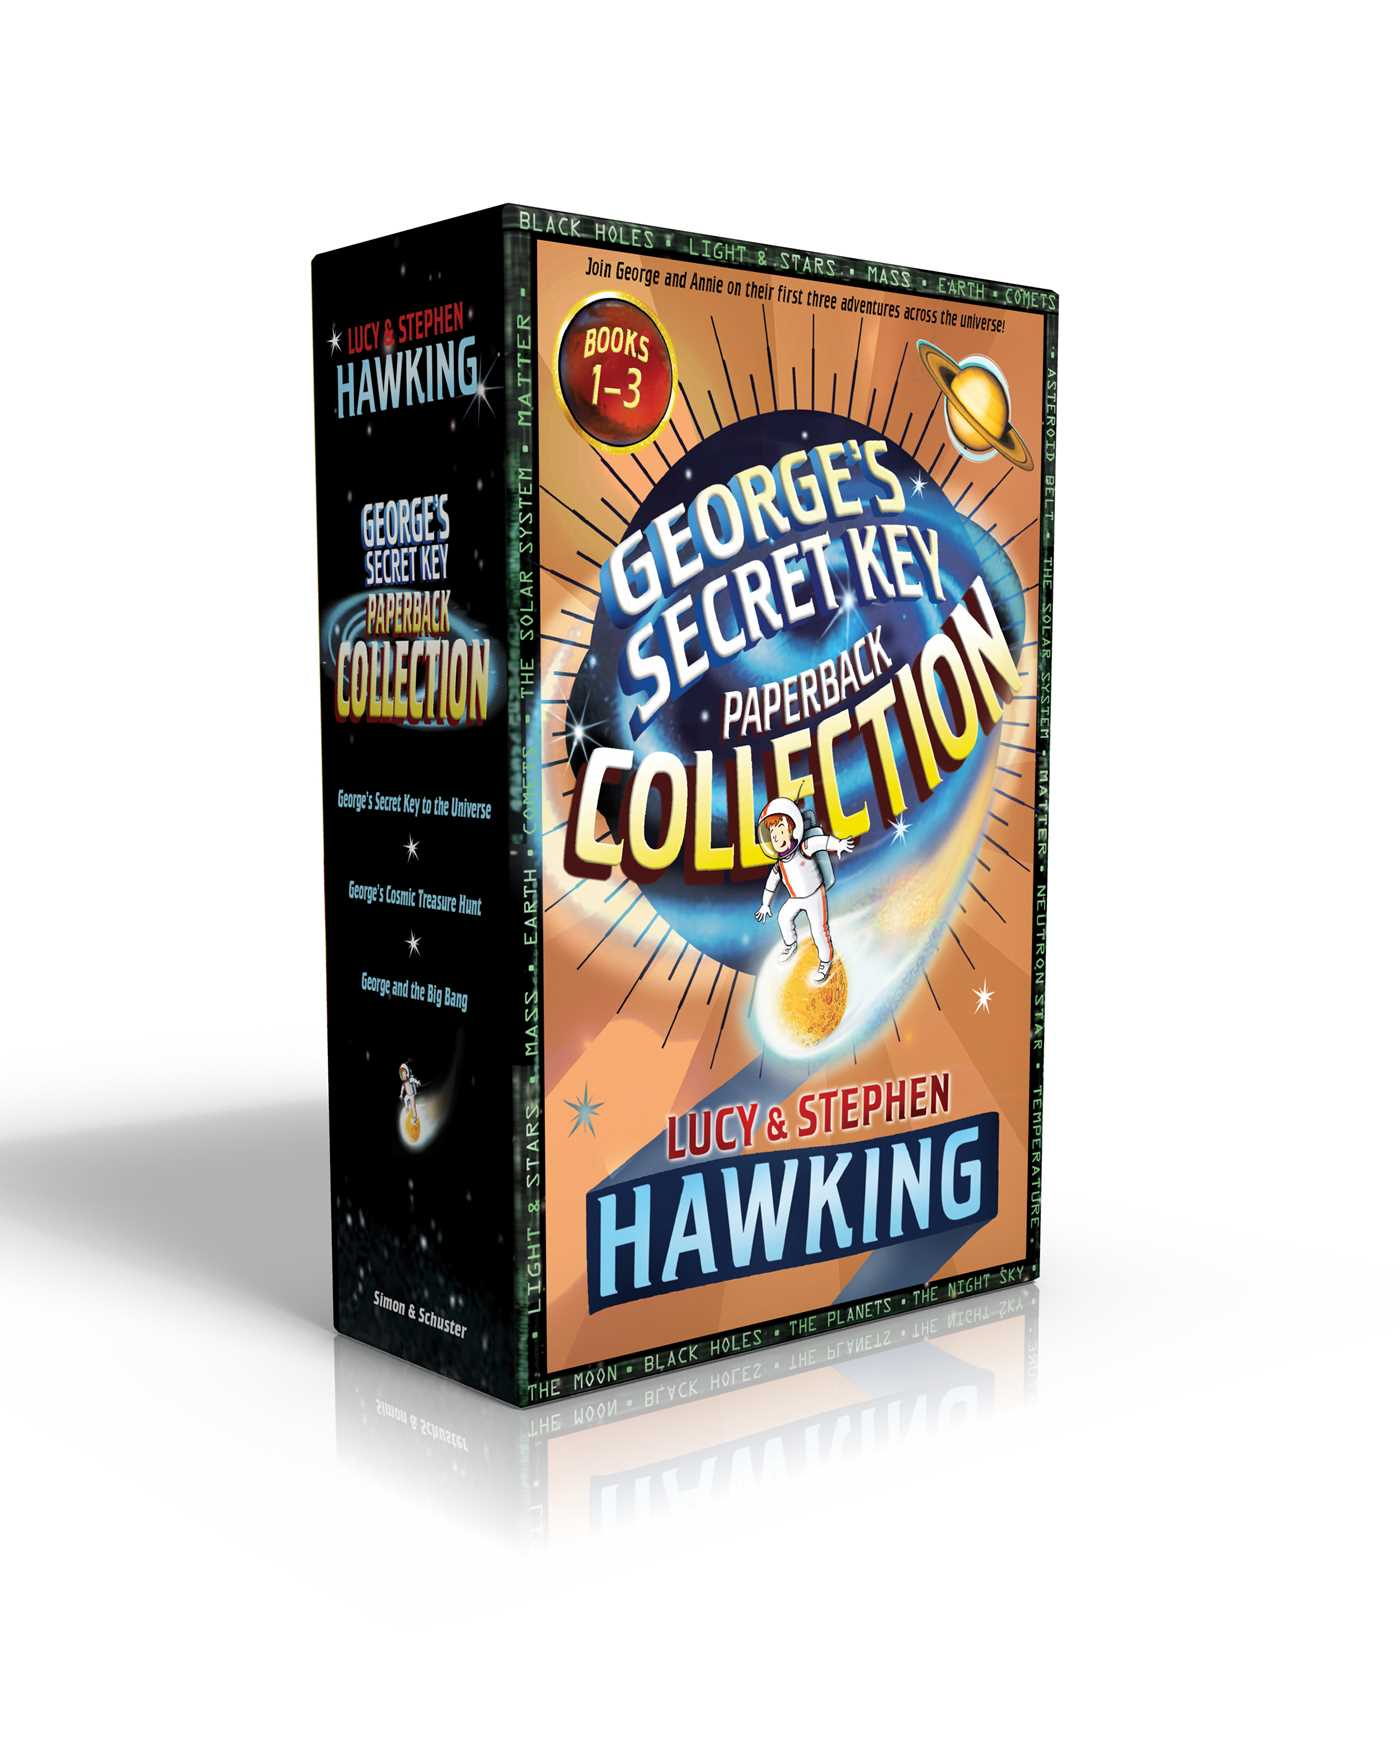 Georges secret key paperback collection 9781481484343 hr